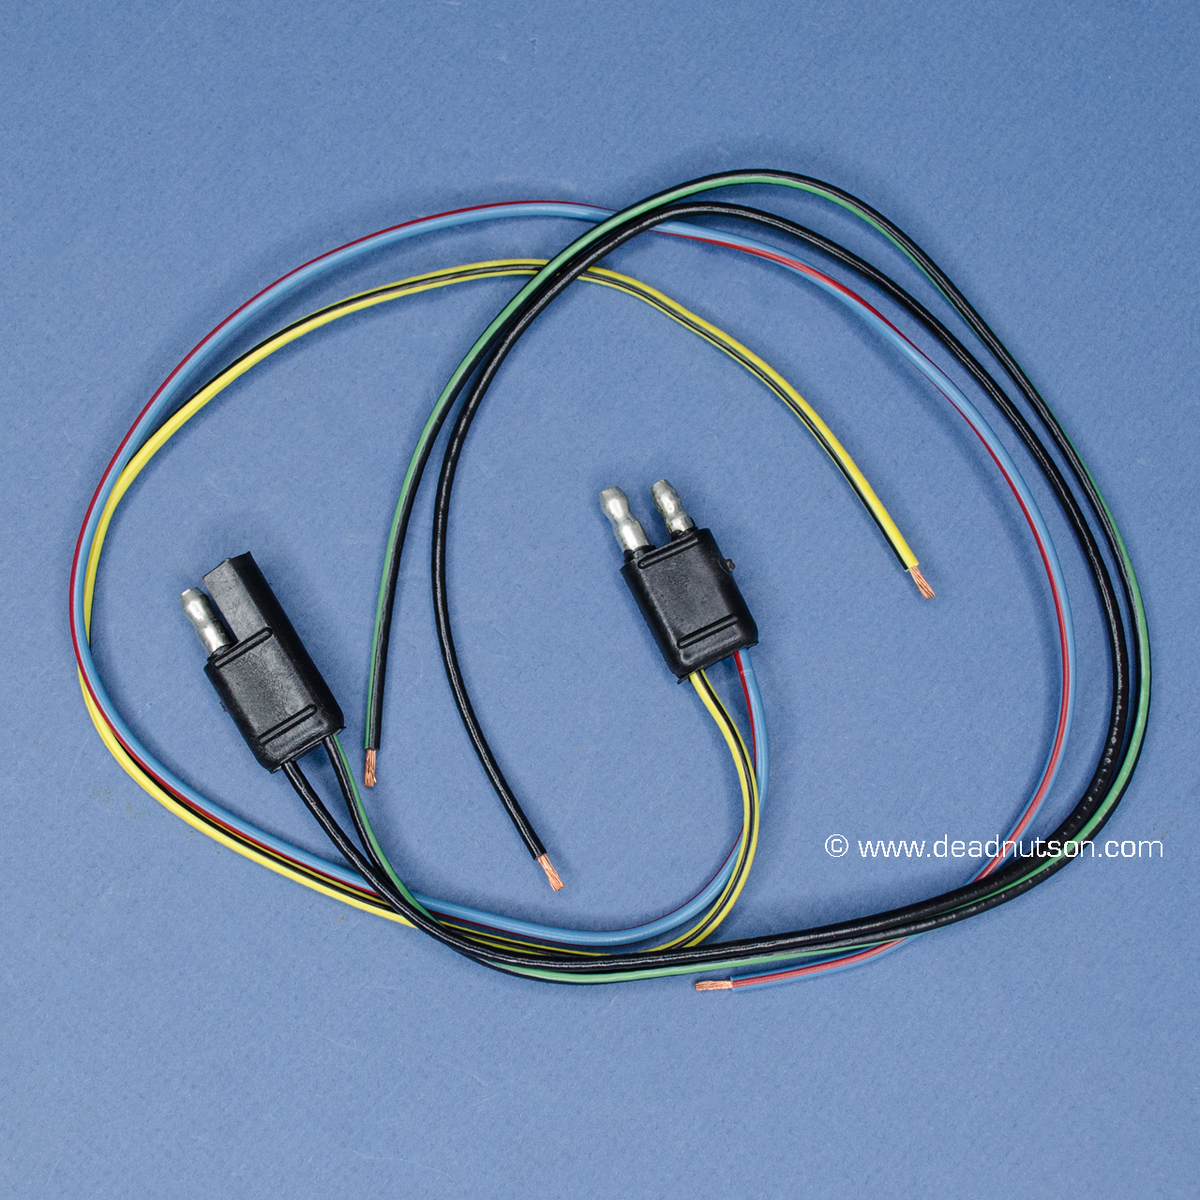 67 Mustang Radio Wiring Diagram Library 1967 Ford Stereo 70 Am Repair Harness Set Dead Nuts On Rh Deadnutson Com